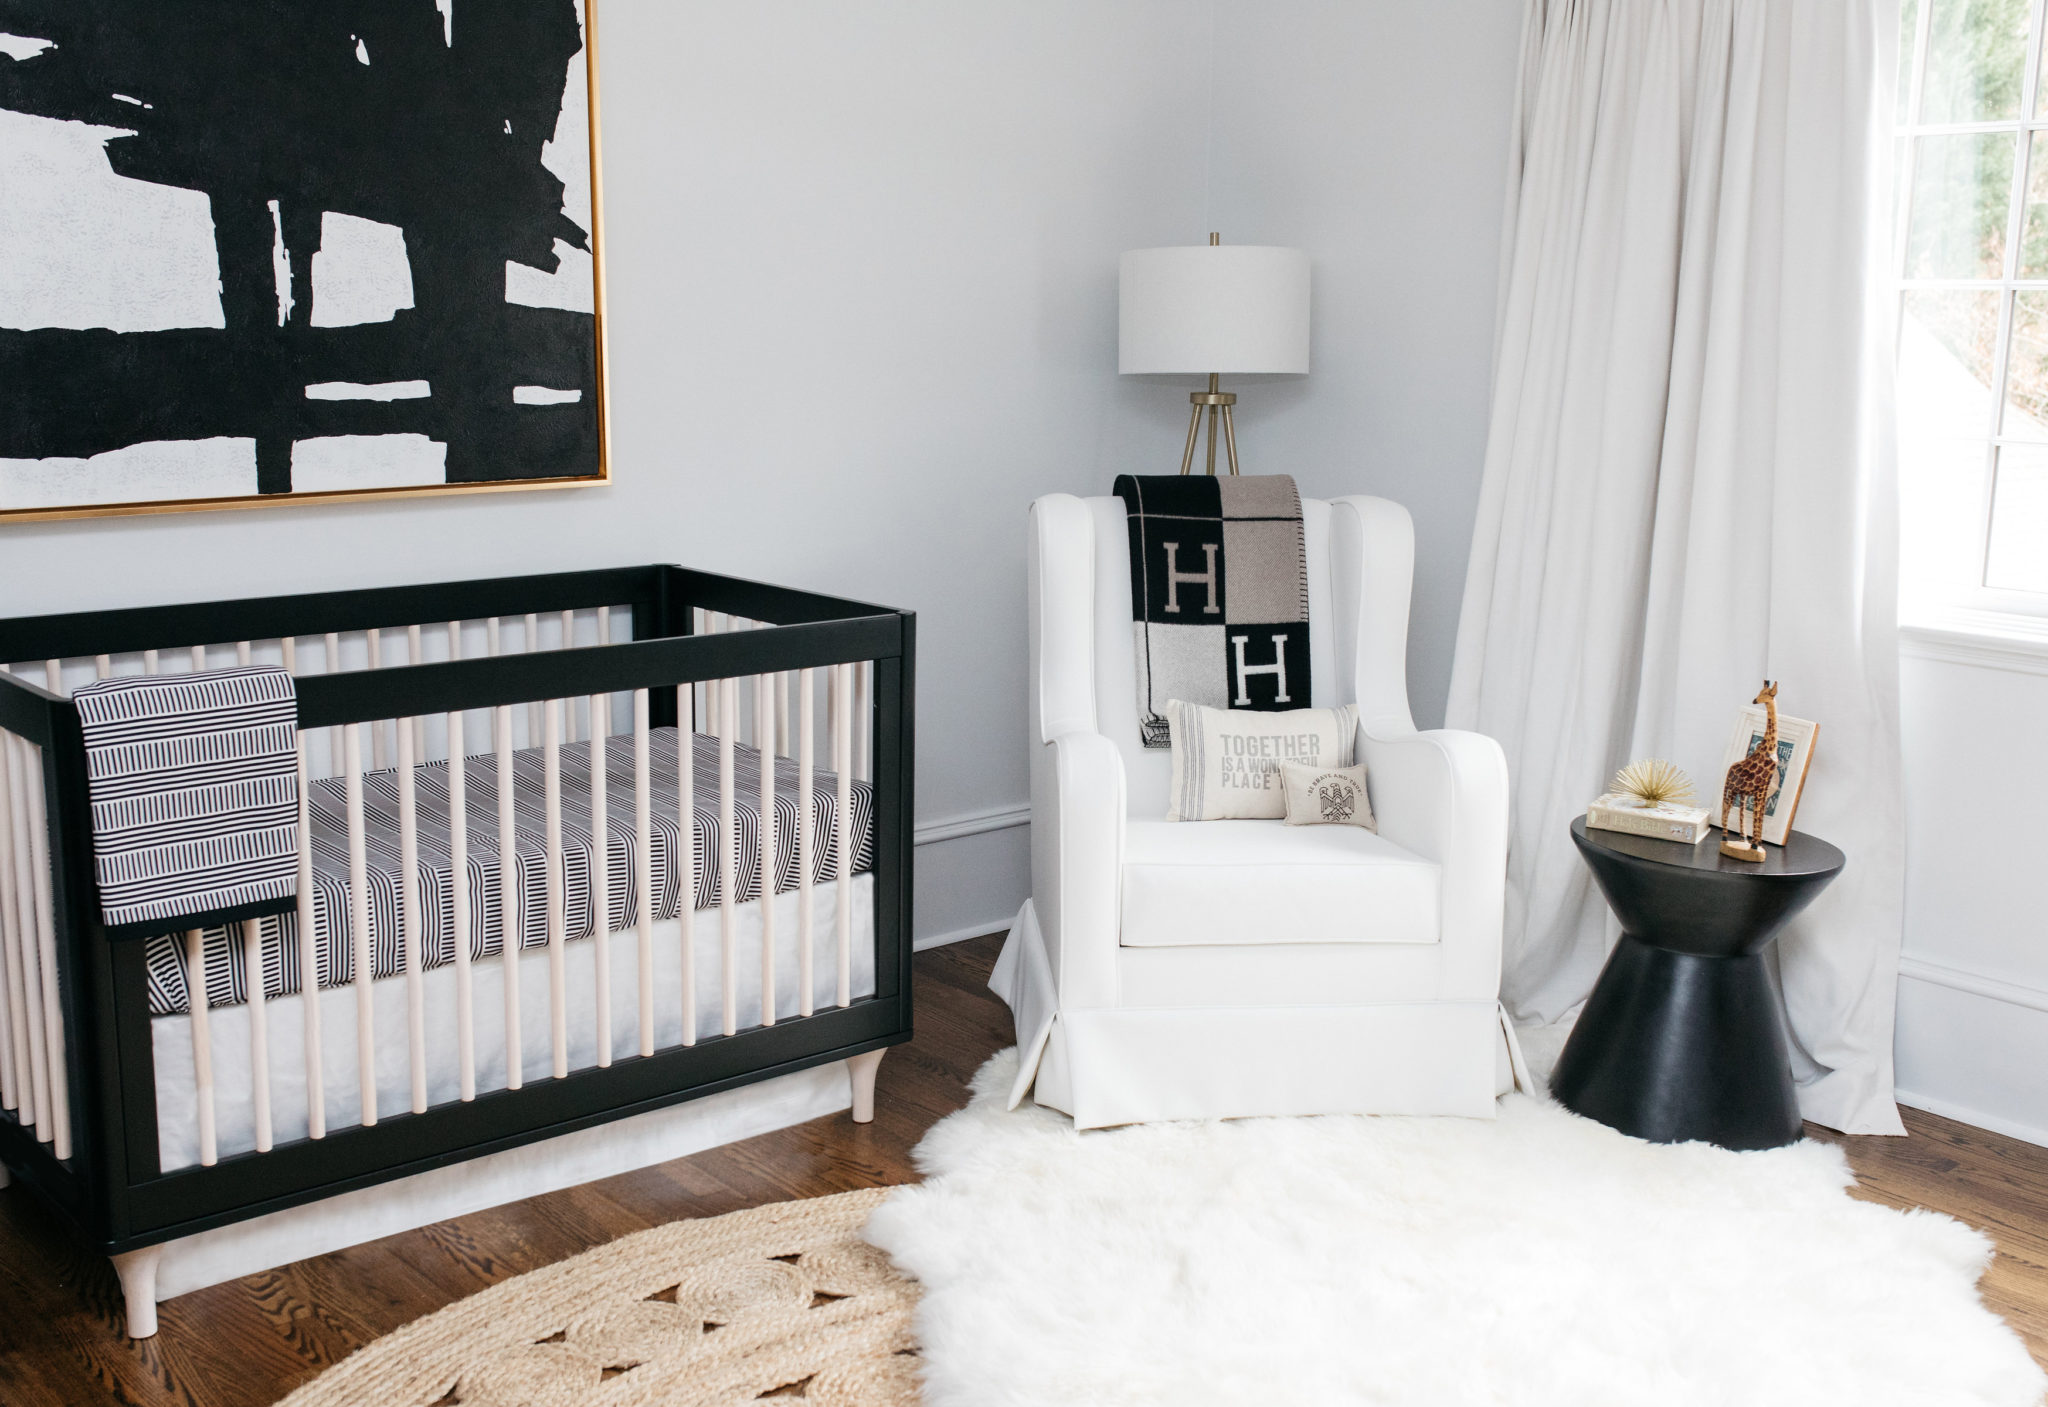 Black crib surrounded by bright decor pieces